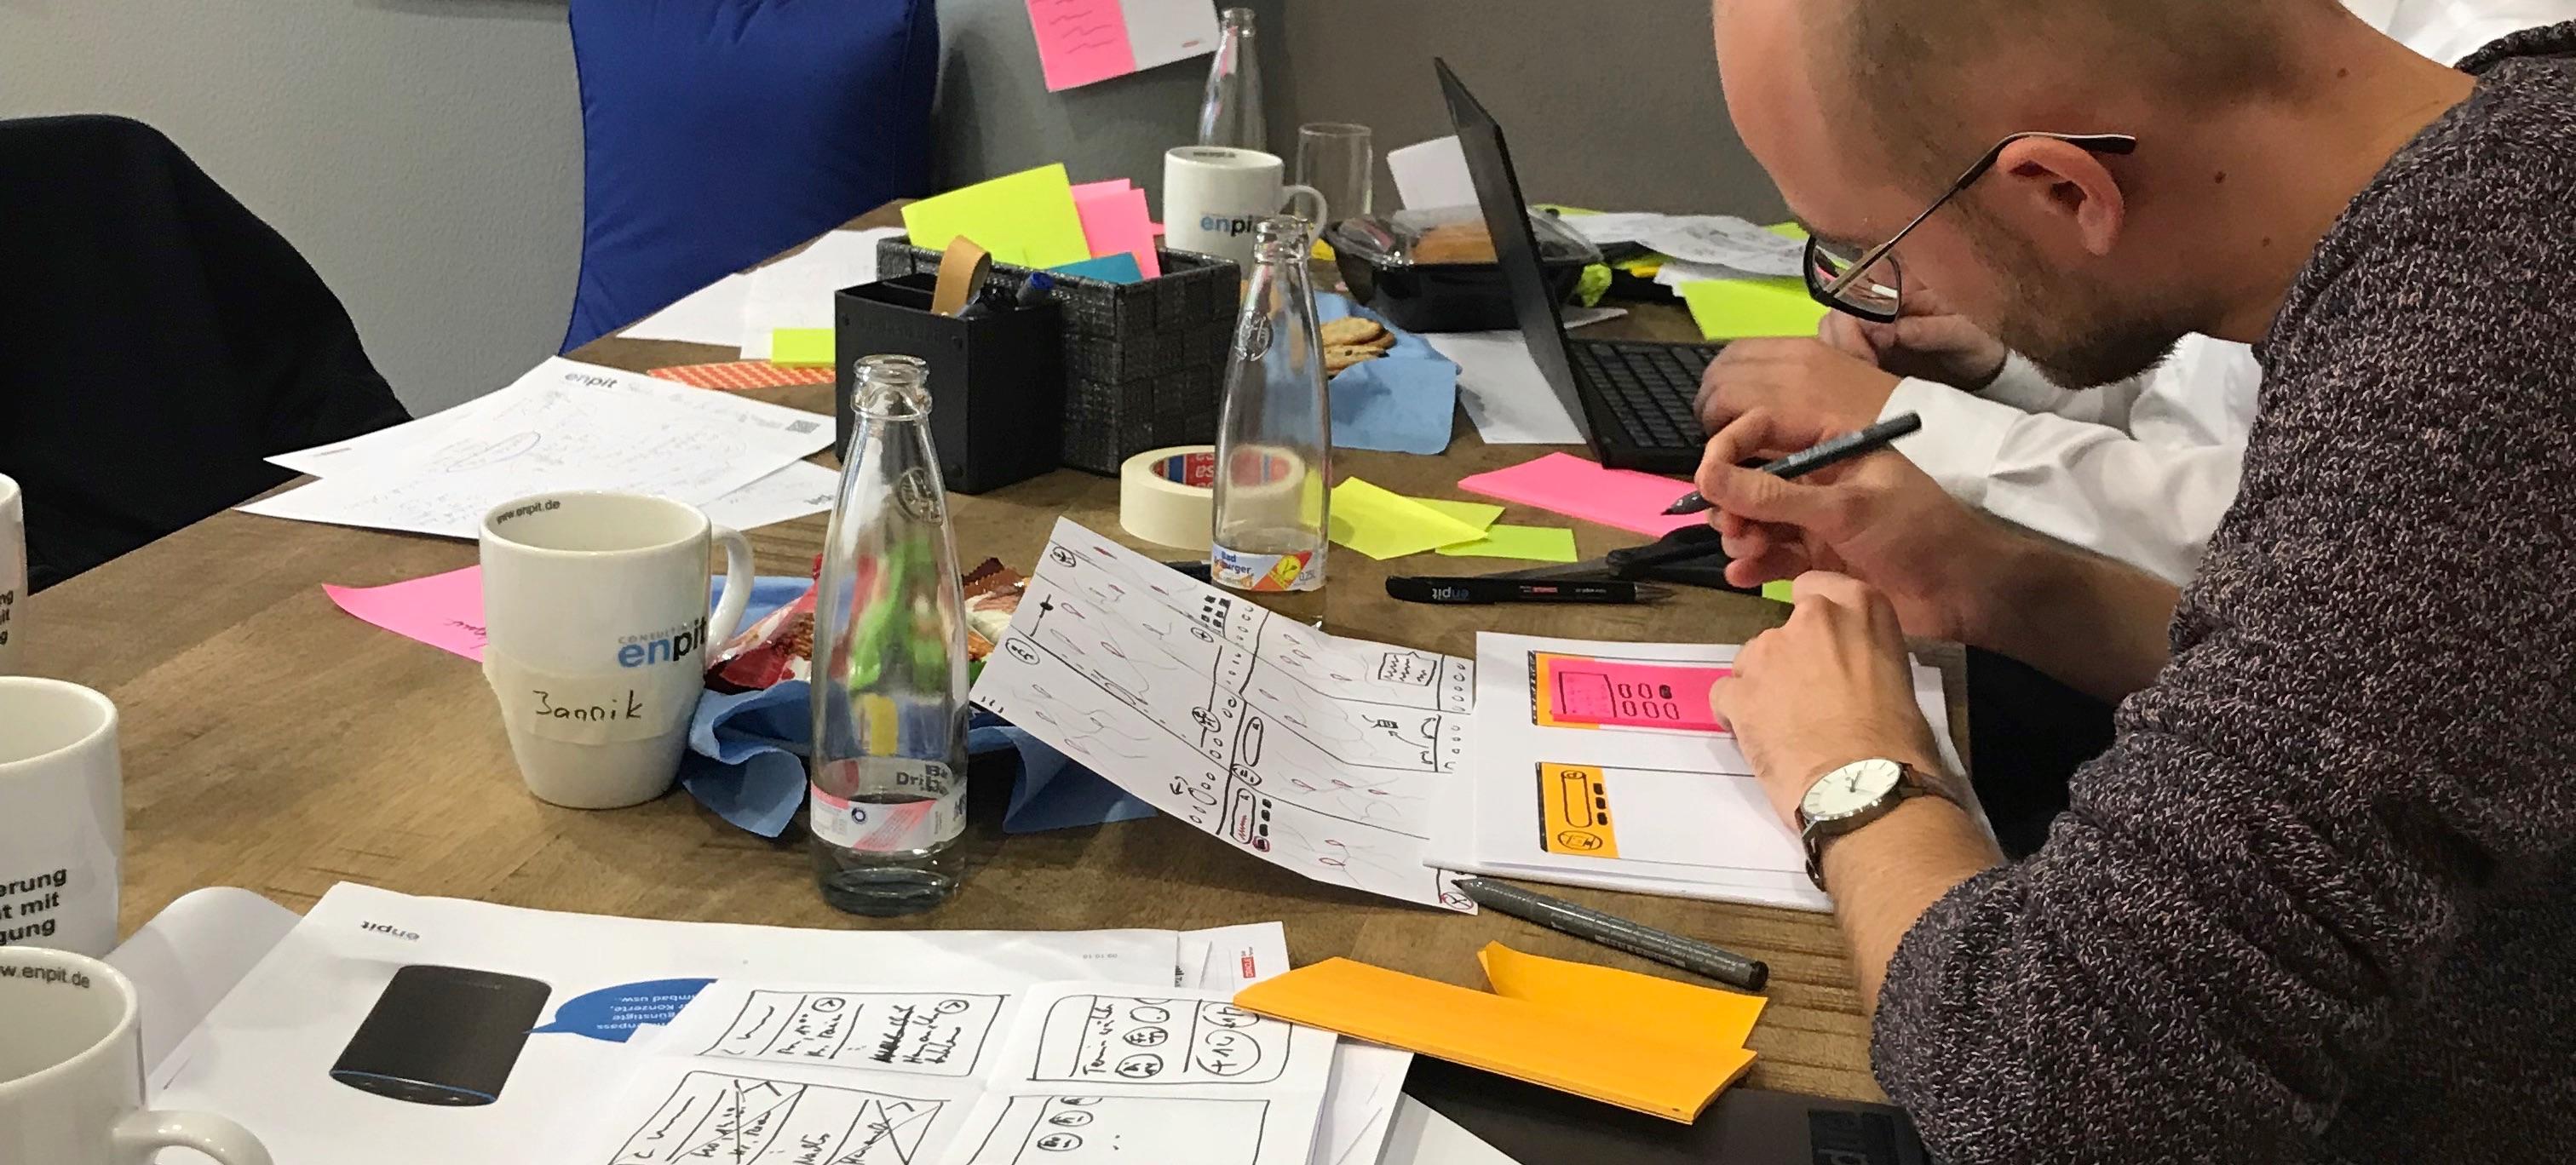 Design Sprint - Sketch Phase